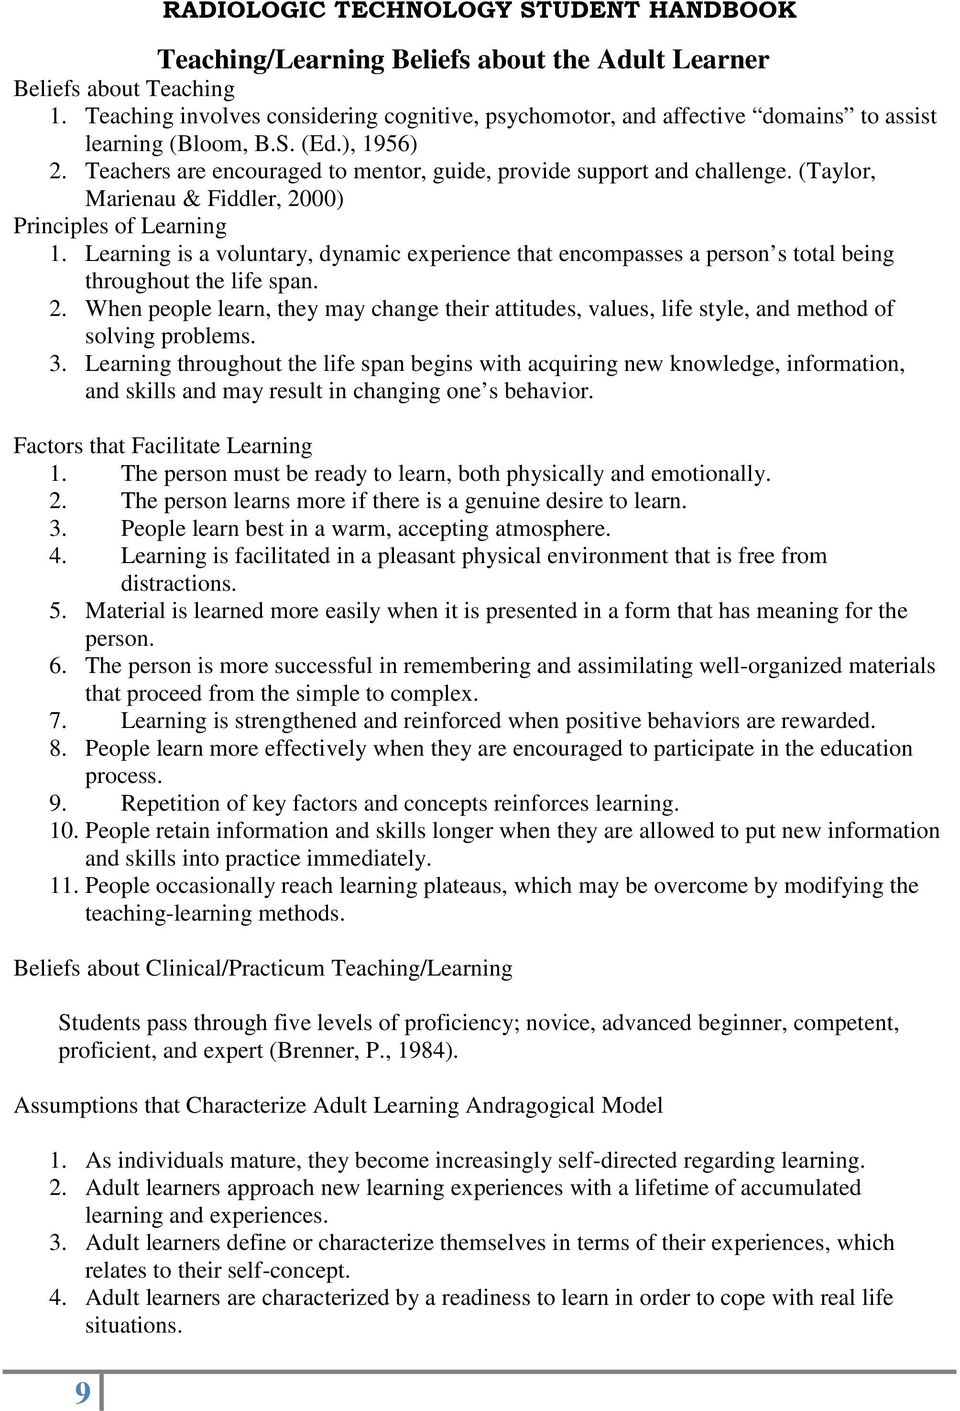 (Taylor, Marienau & Fiddler, 2000) Principles of Learning 1. Learning is a voluntary, dynamic experience that encompasses a person s total being throughout the life span. 2. When people learn, they may change their attitudes, values, life style, and method of solving problems.